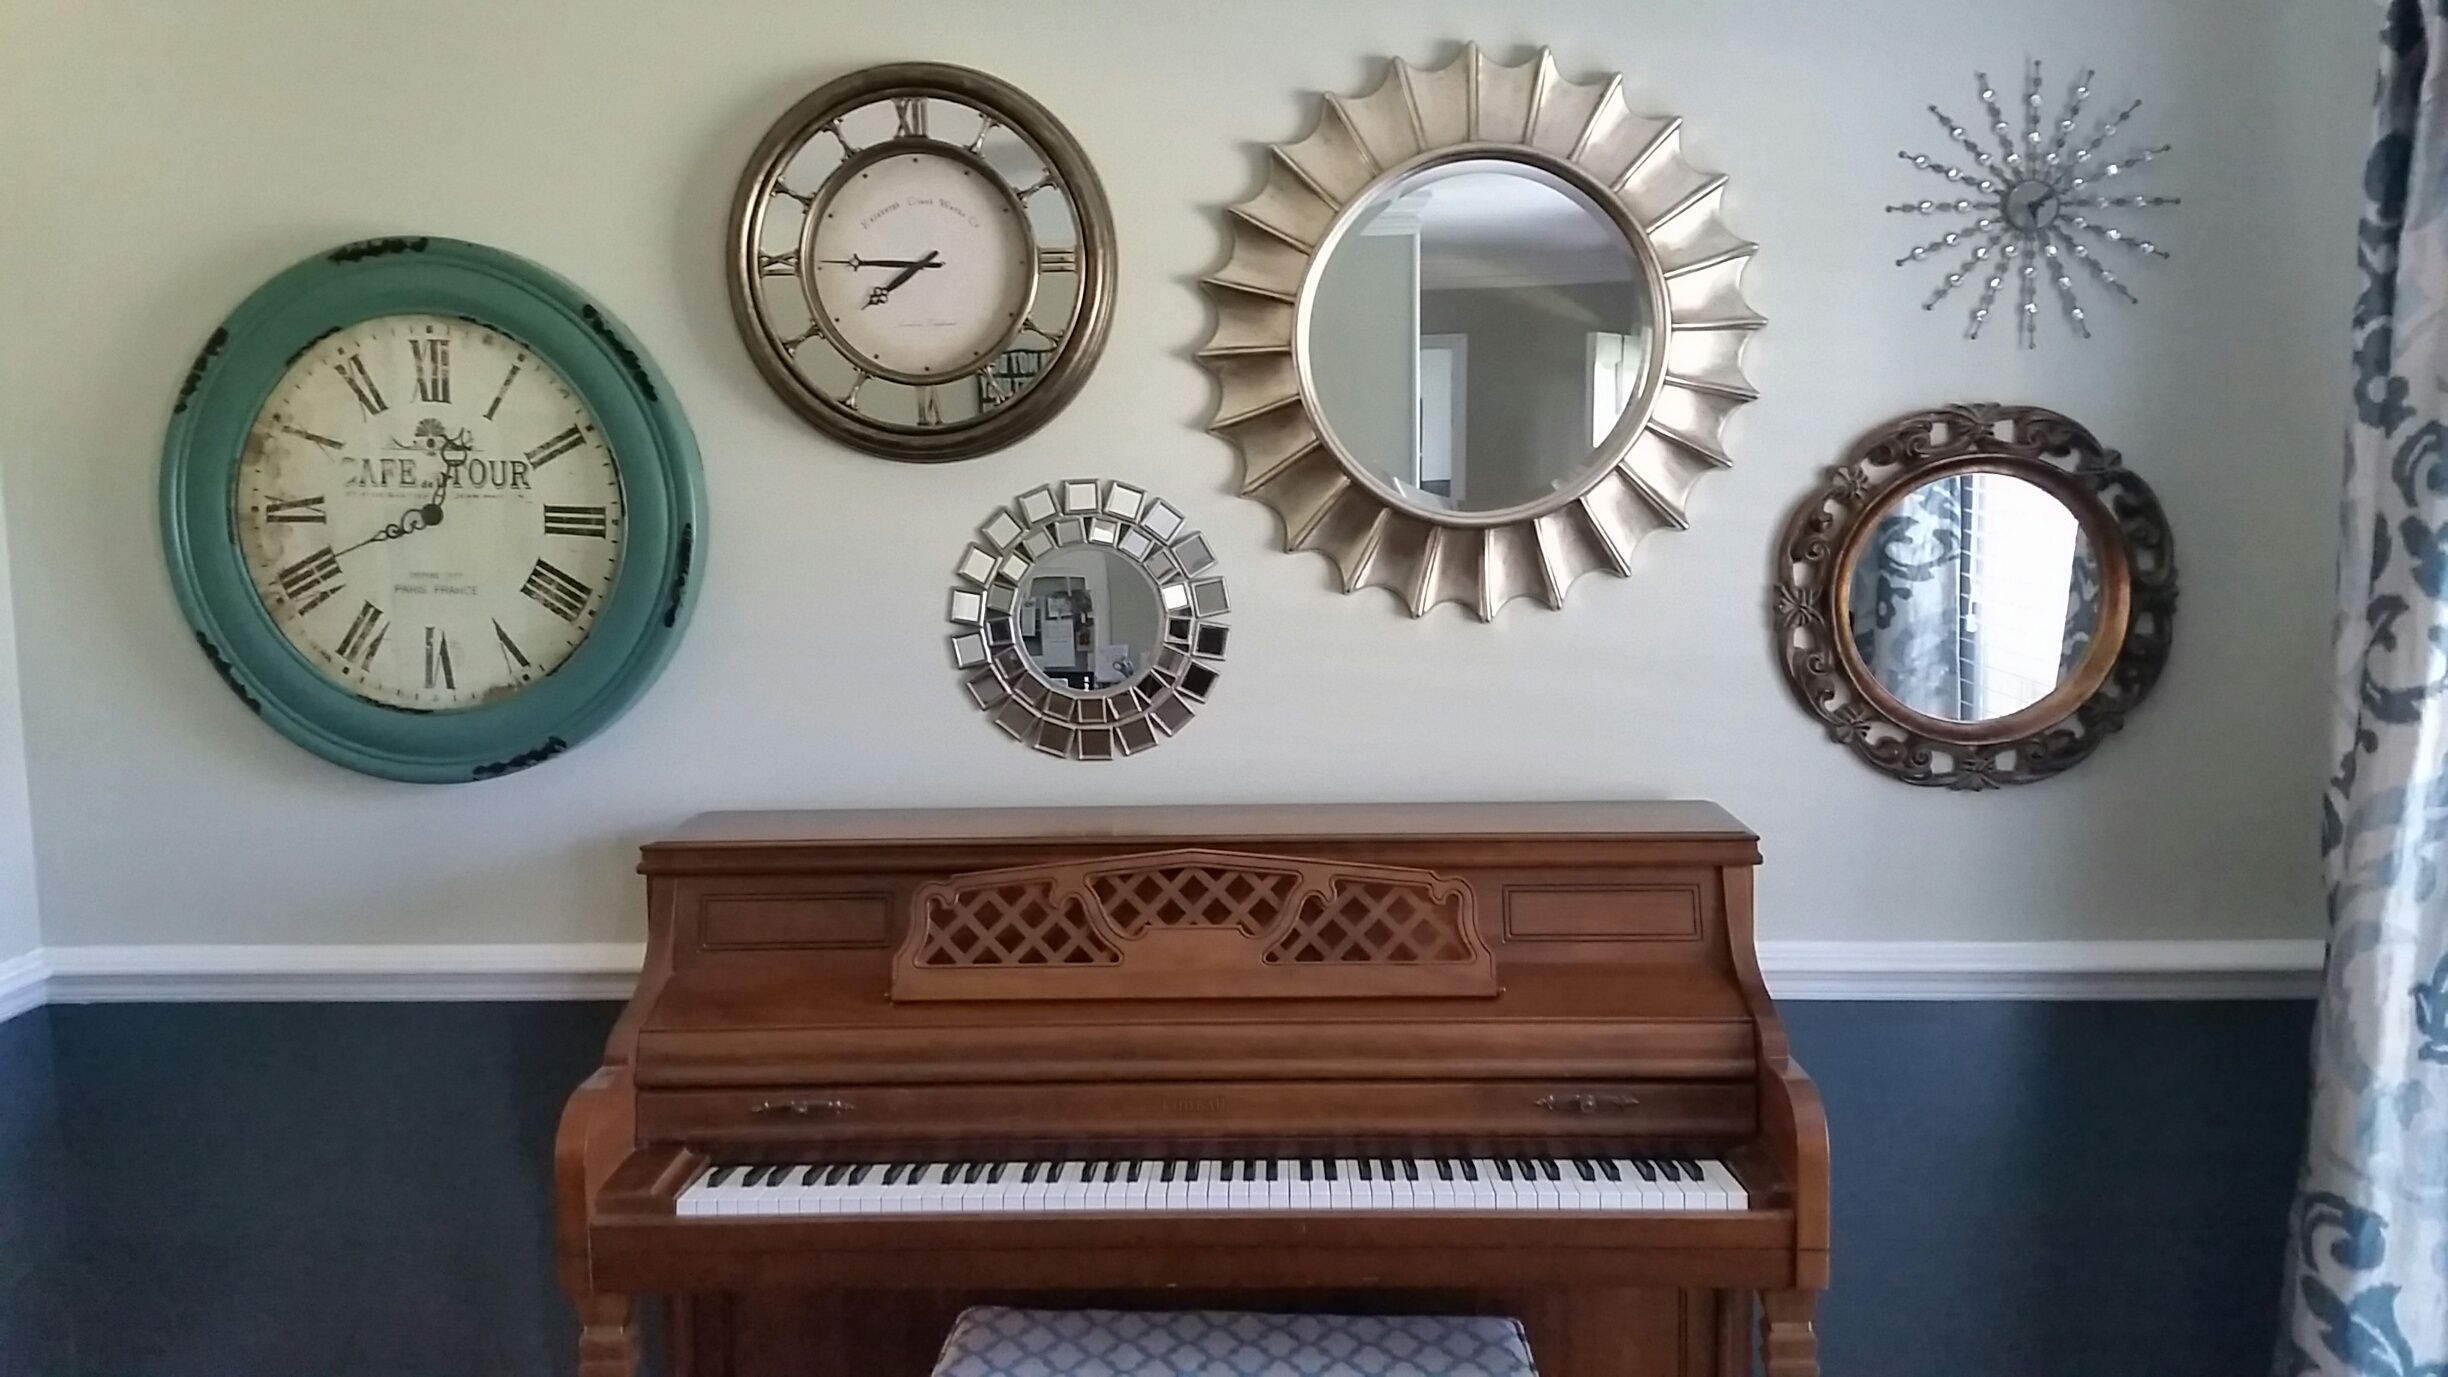 Decorative Mirror Groupings Wall Grouping Of Round Decorative Mirrors Plus One Clock